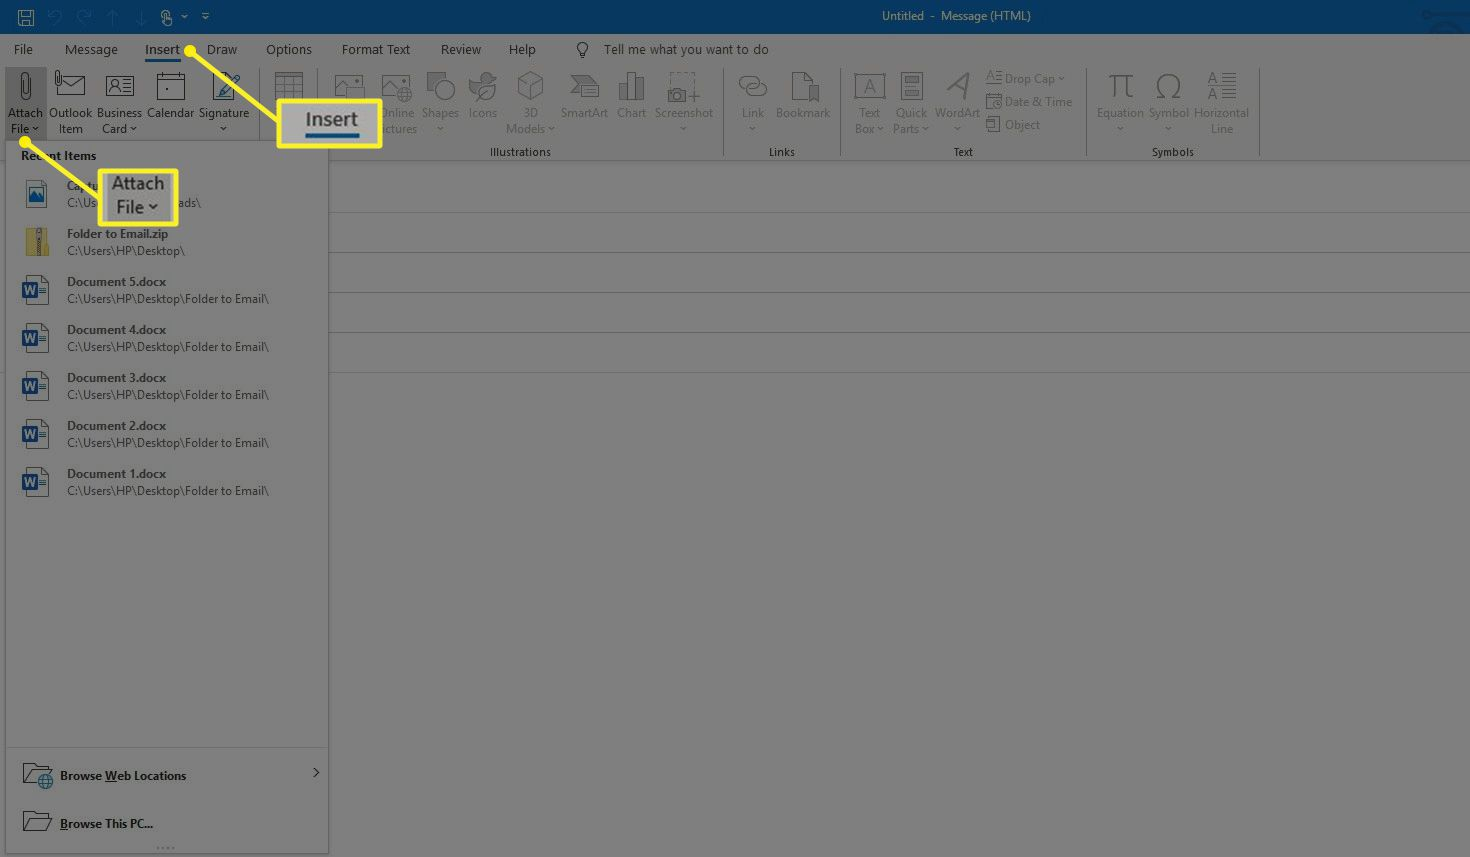 Attach File on Insert tab in Outlook